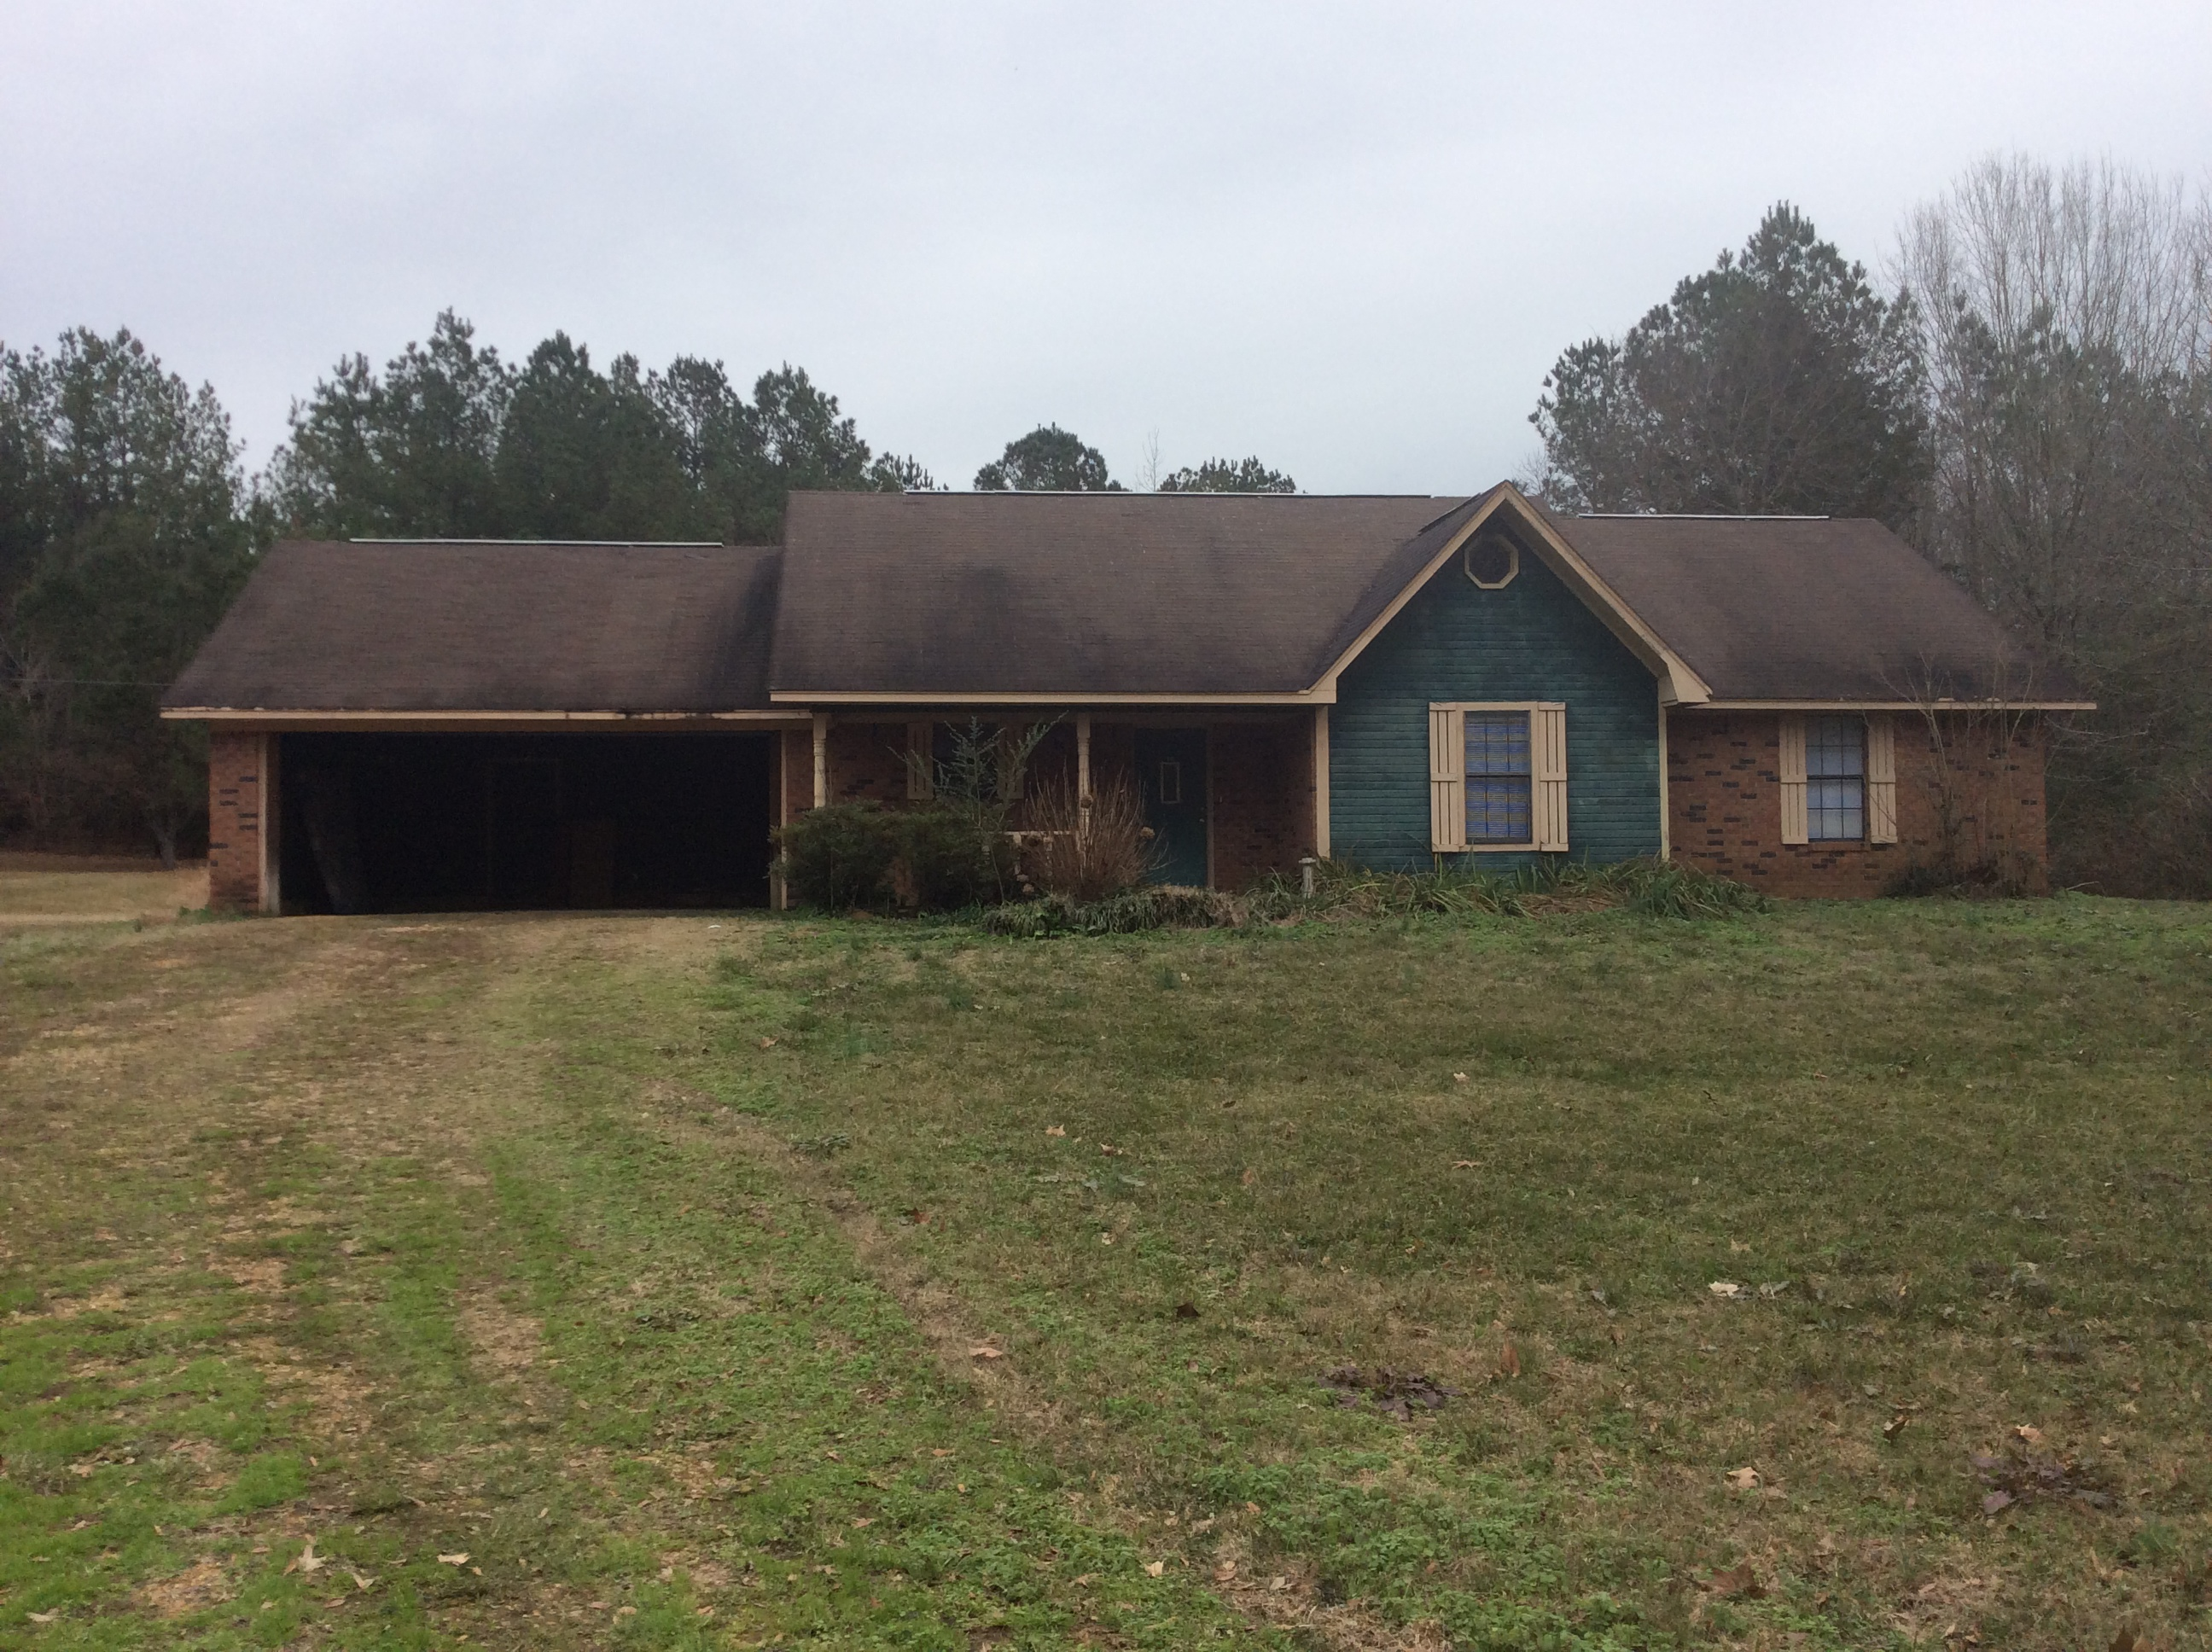 192 County Road 805, Shannon, Mississippi 38868